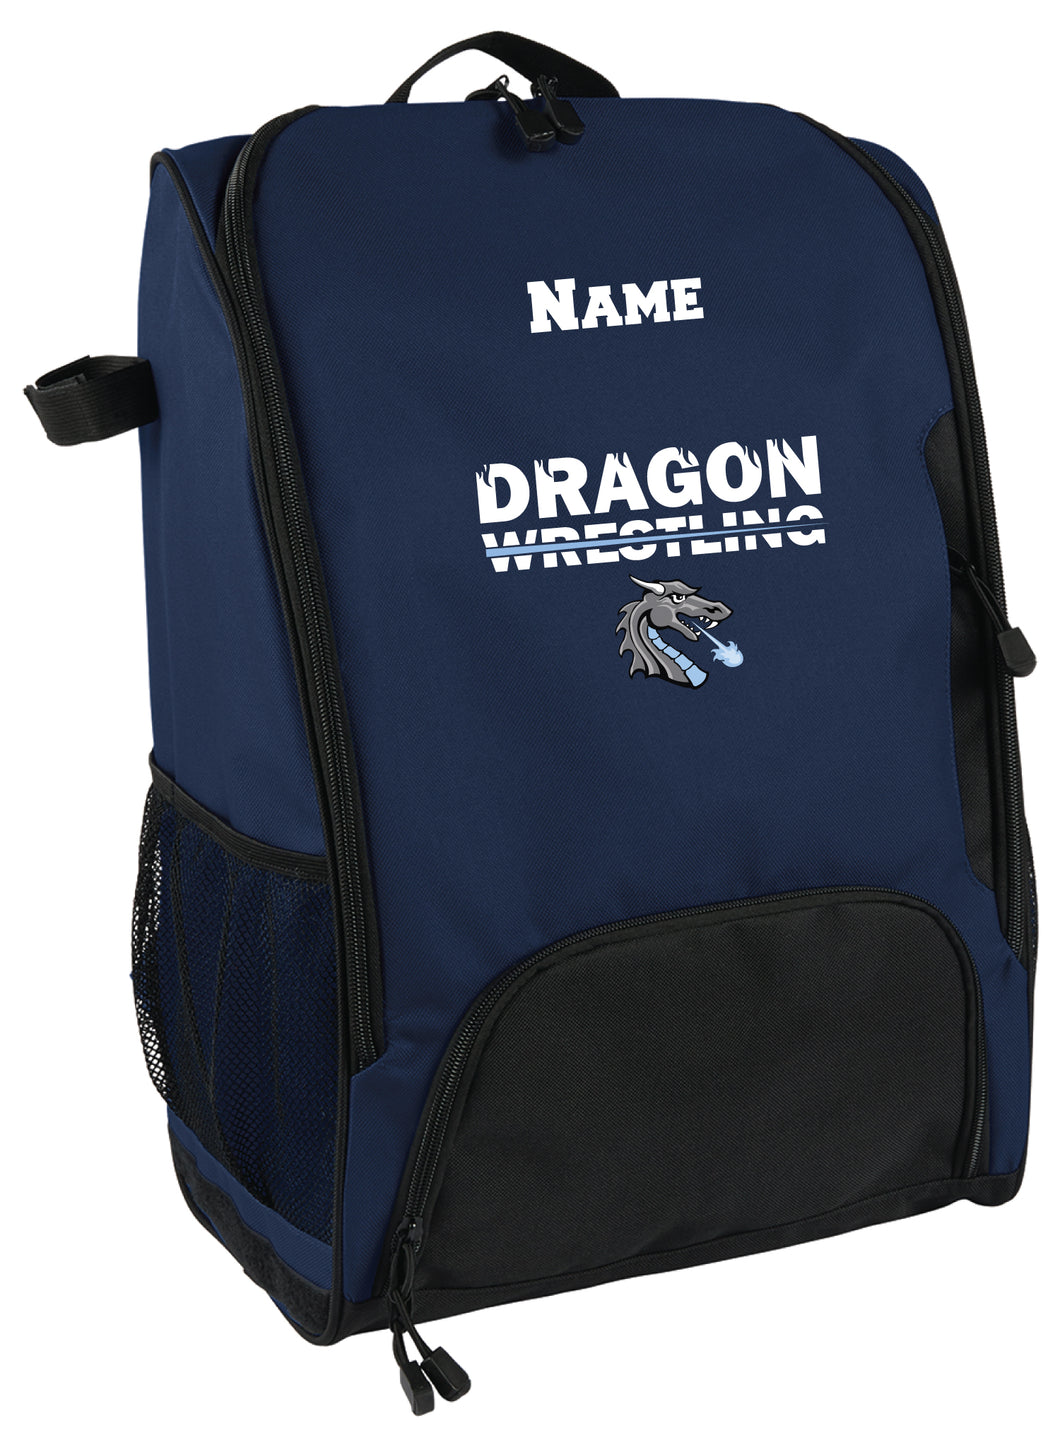 Middletown Dragons Wrestling Backpack - 5KounT2018